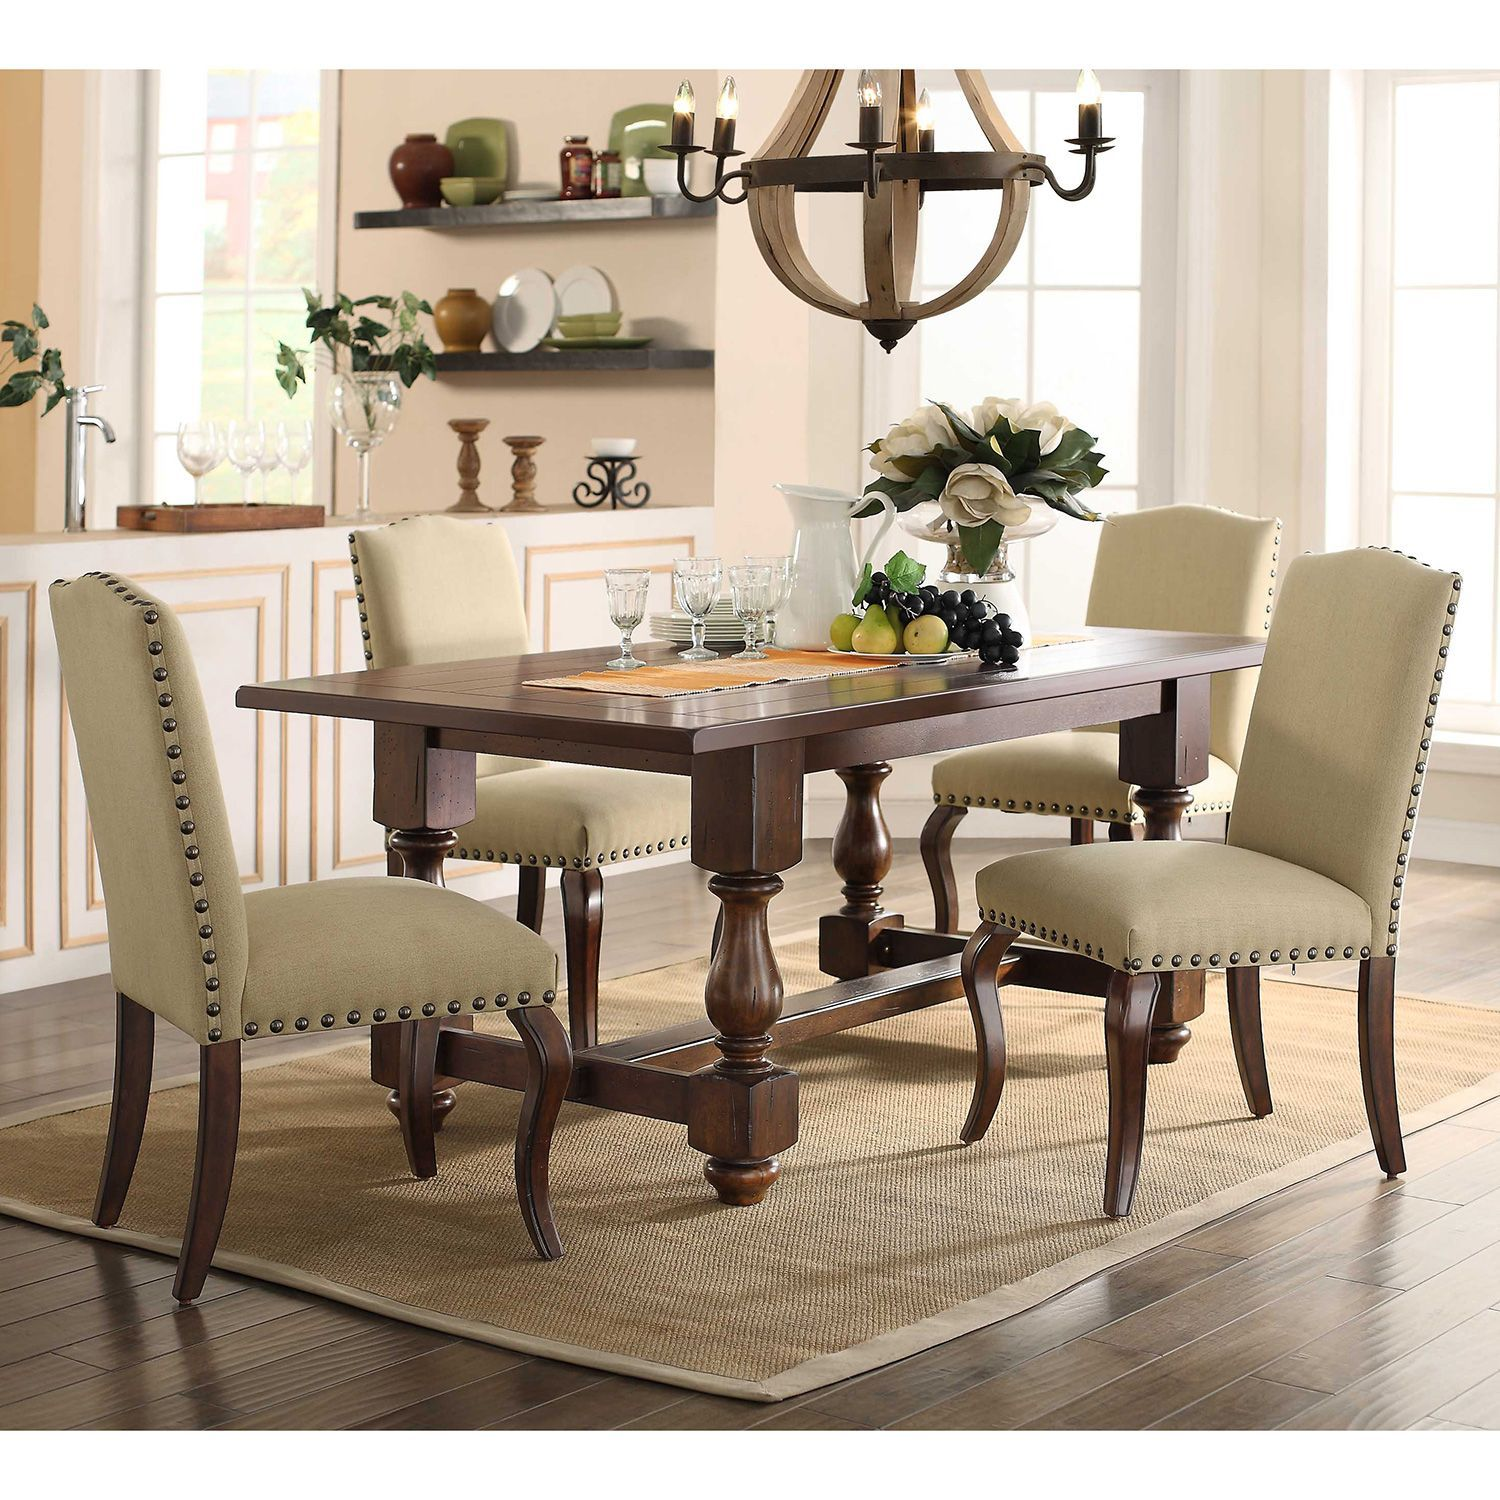 Atteberry Dining Set 5 pc Dining table, Dining room